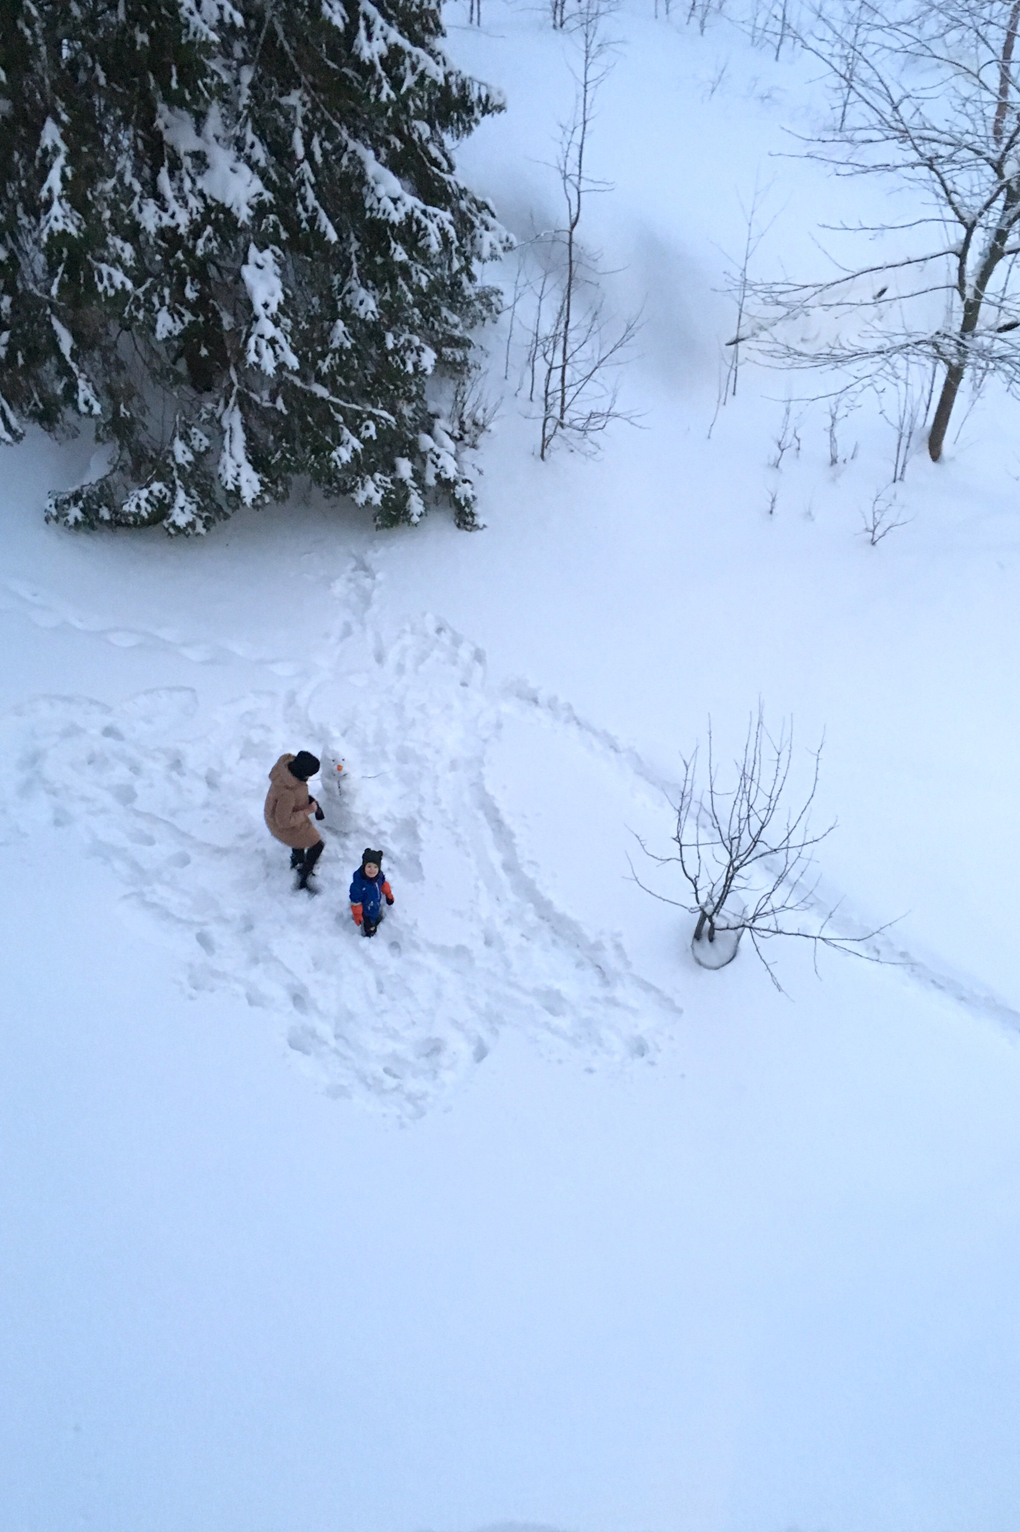 Aerial view of an adult and a child building a snowman